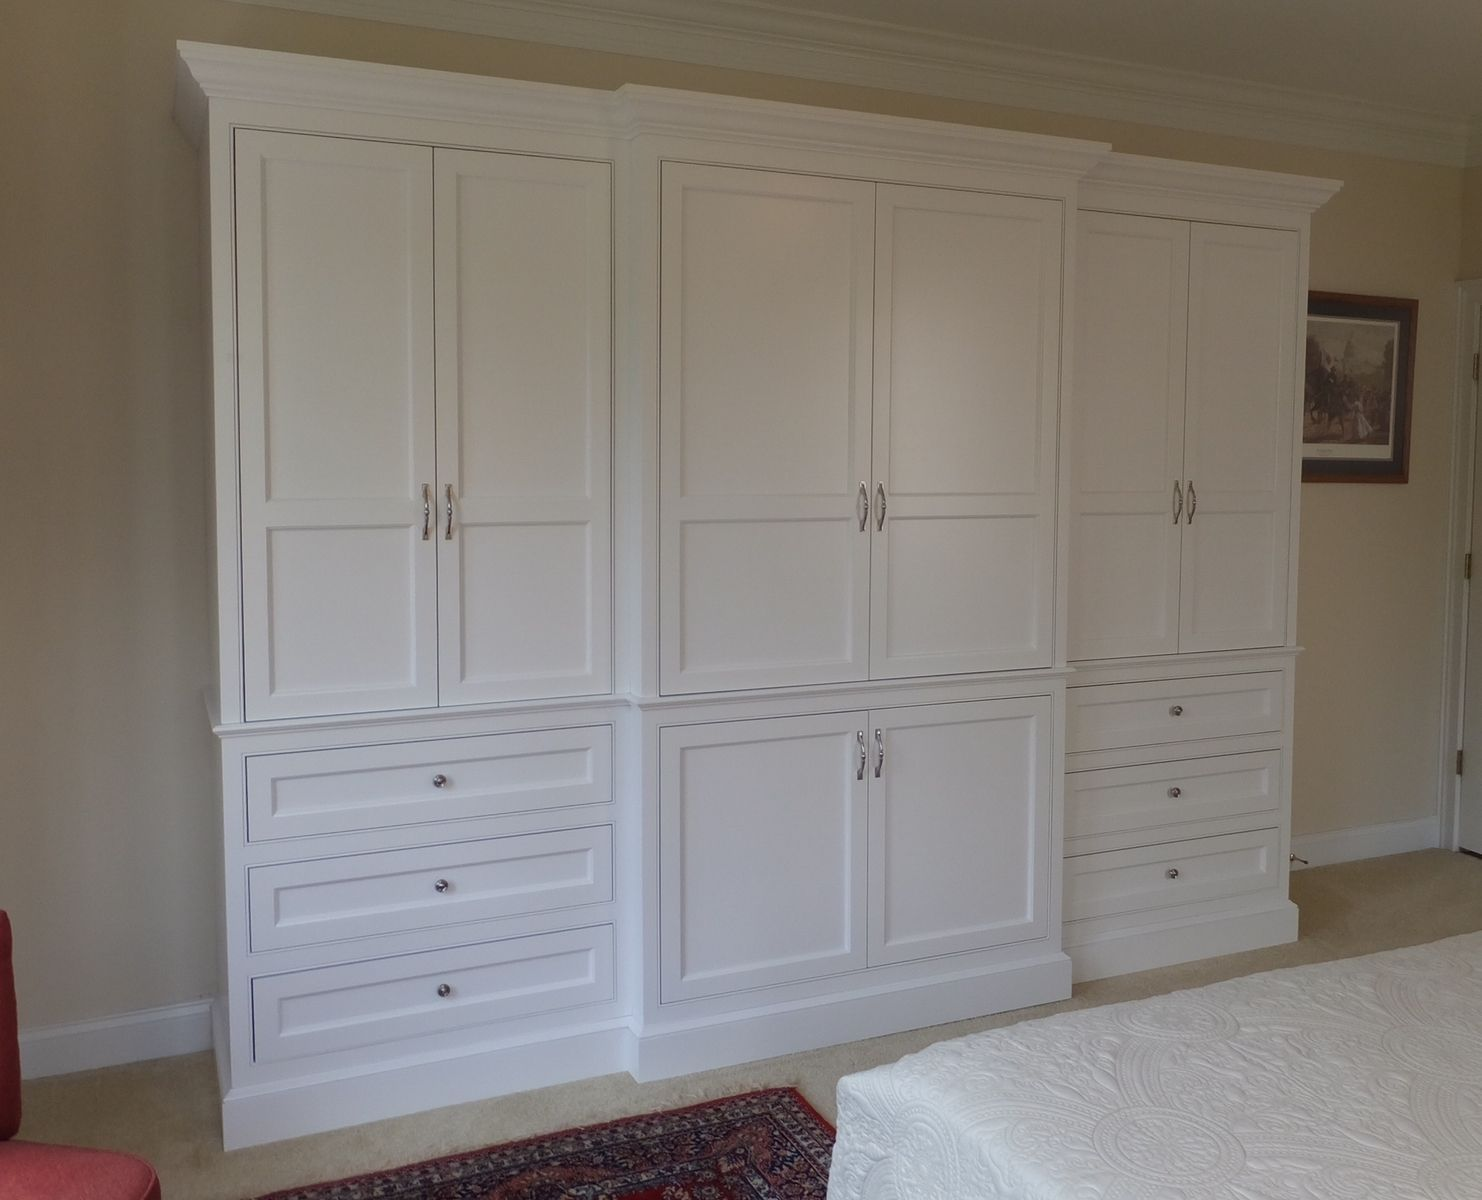 Custom Made Built-In Wardrobe Armoire